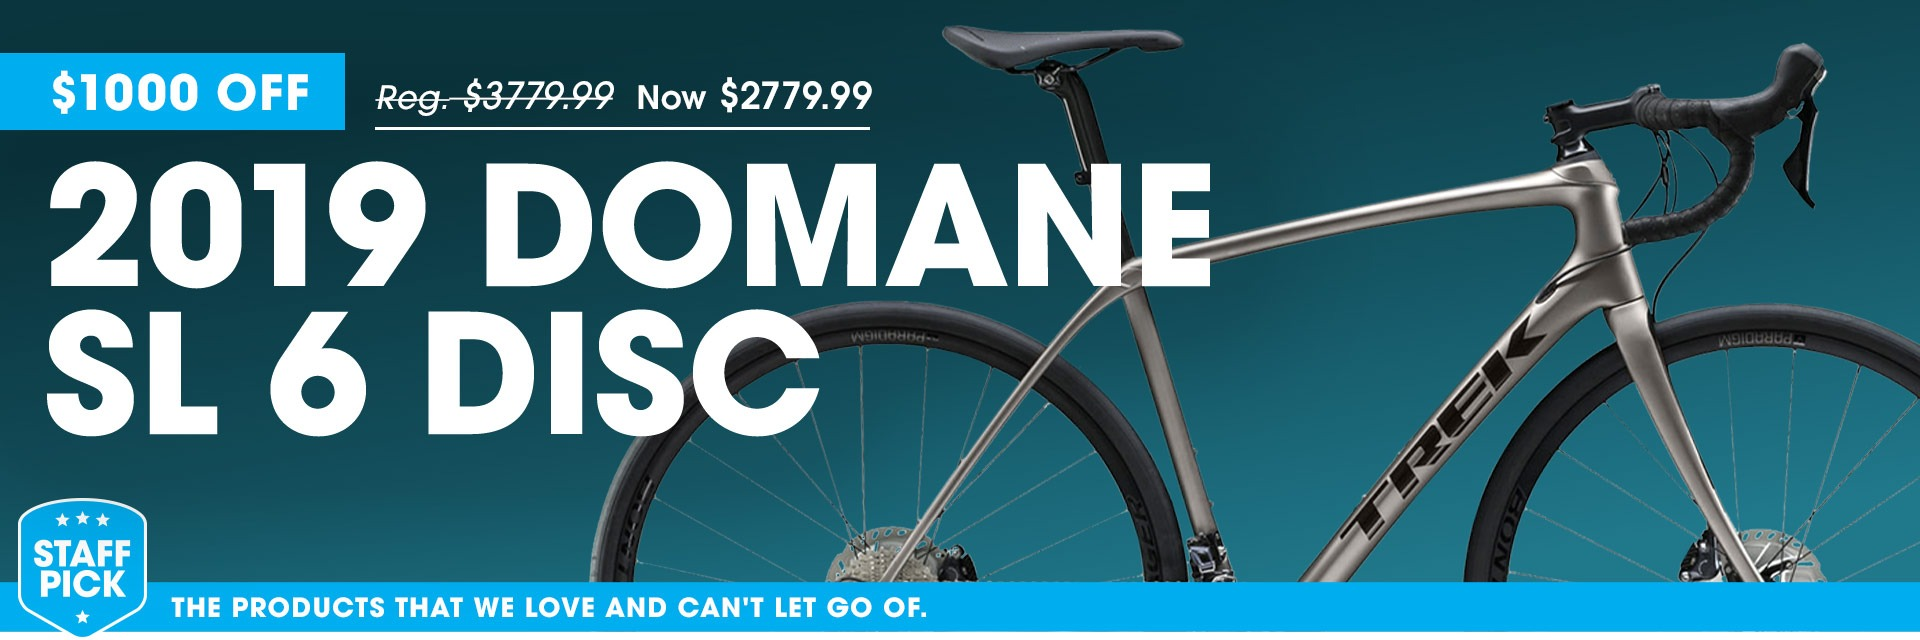 2019 Domane SL 6 Disc - $980 Off